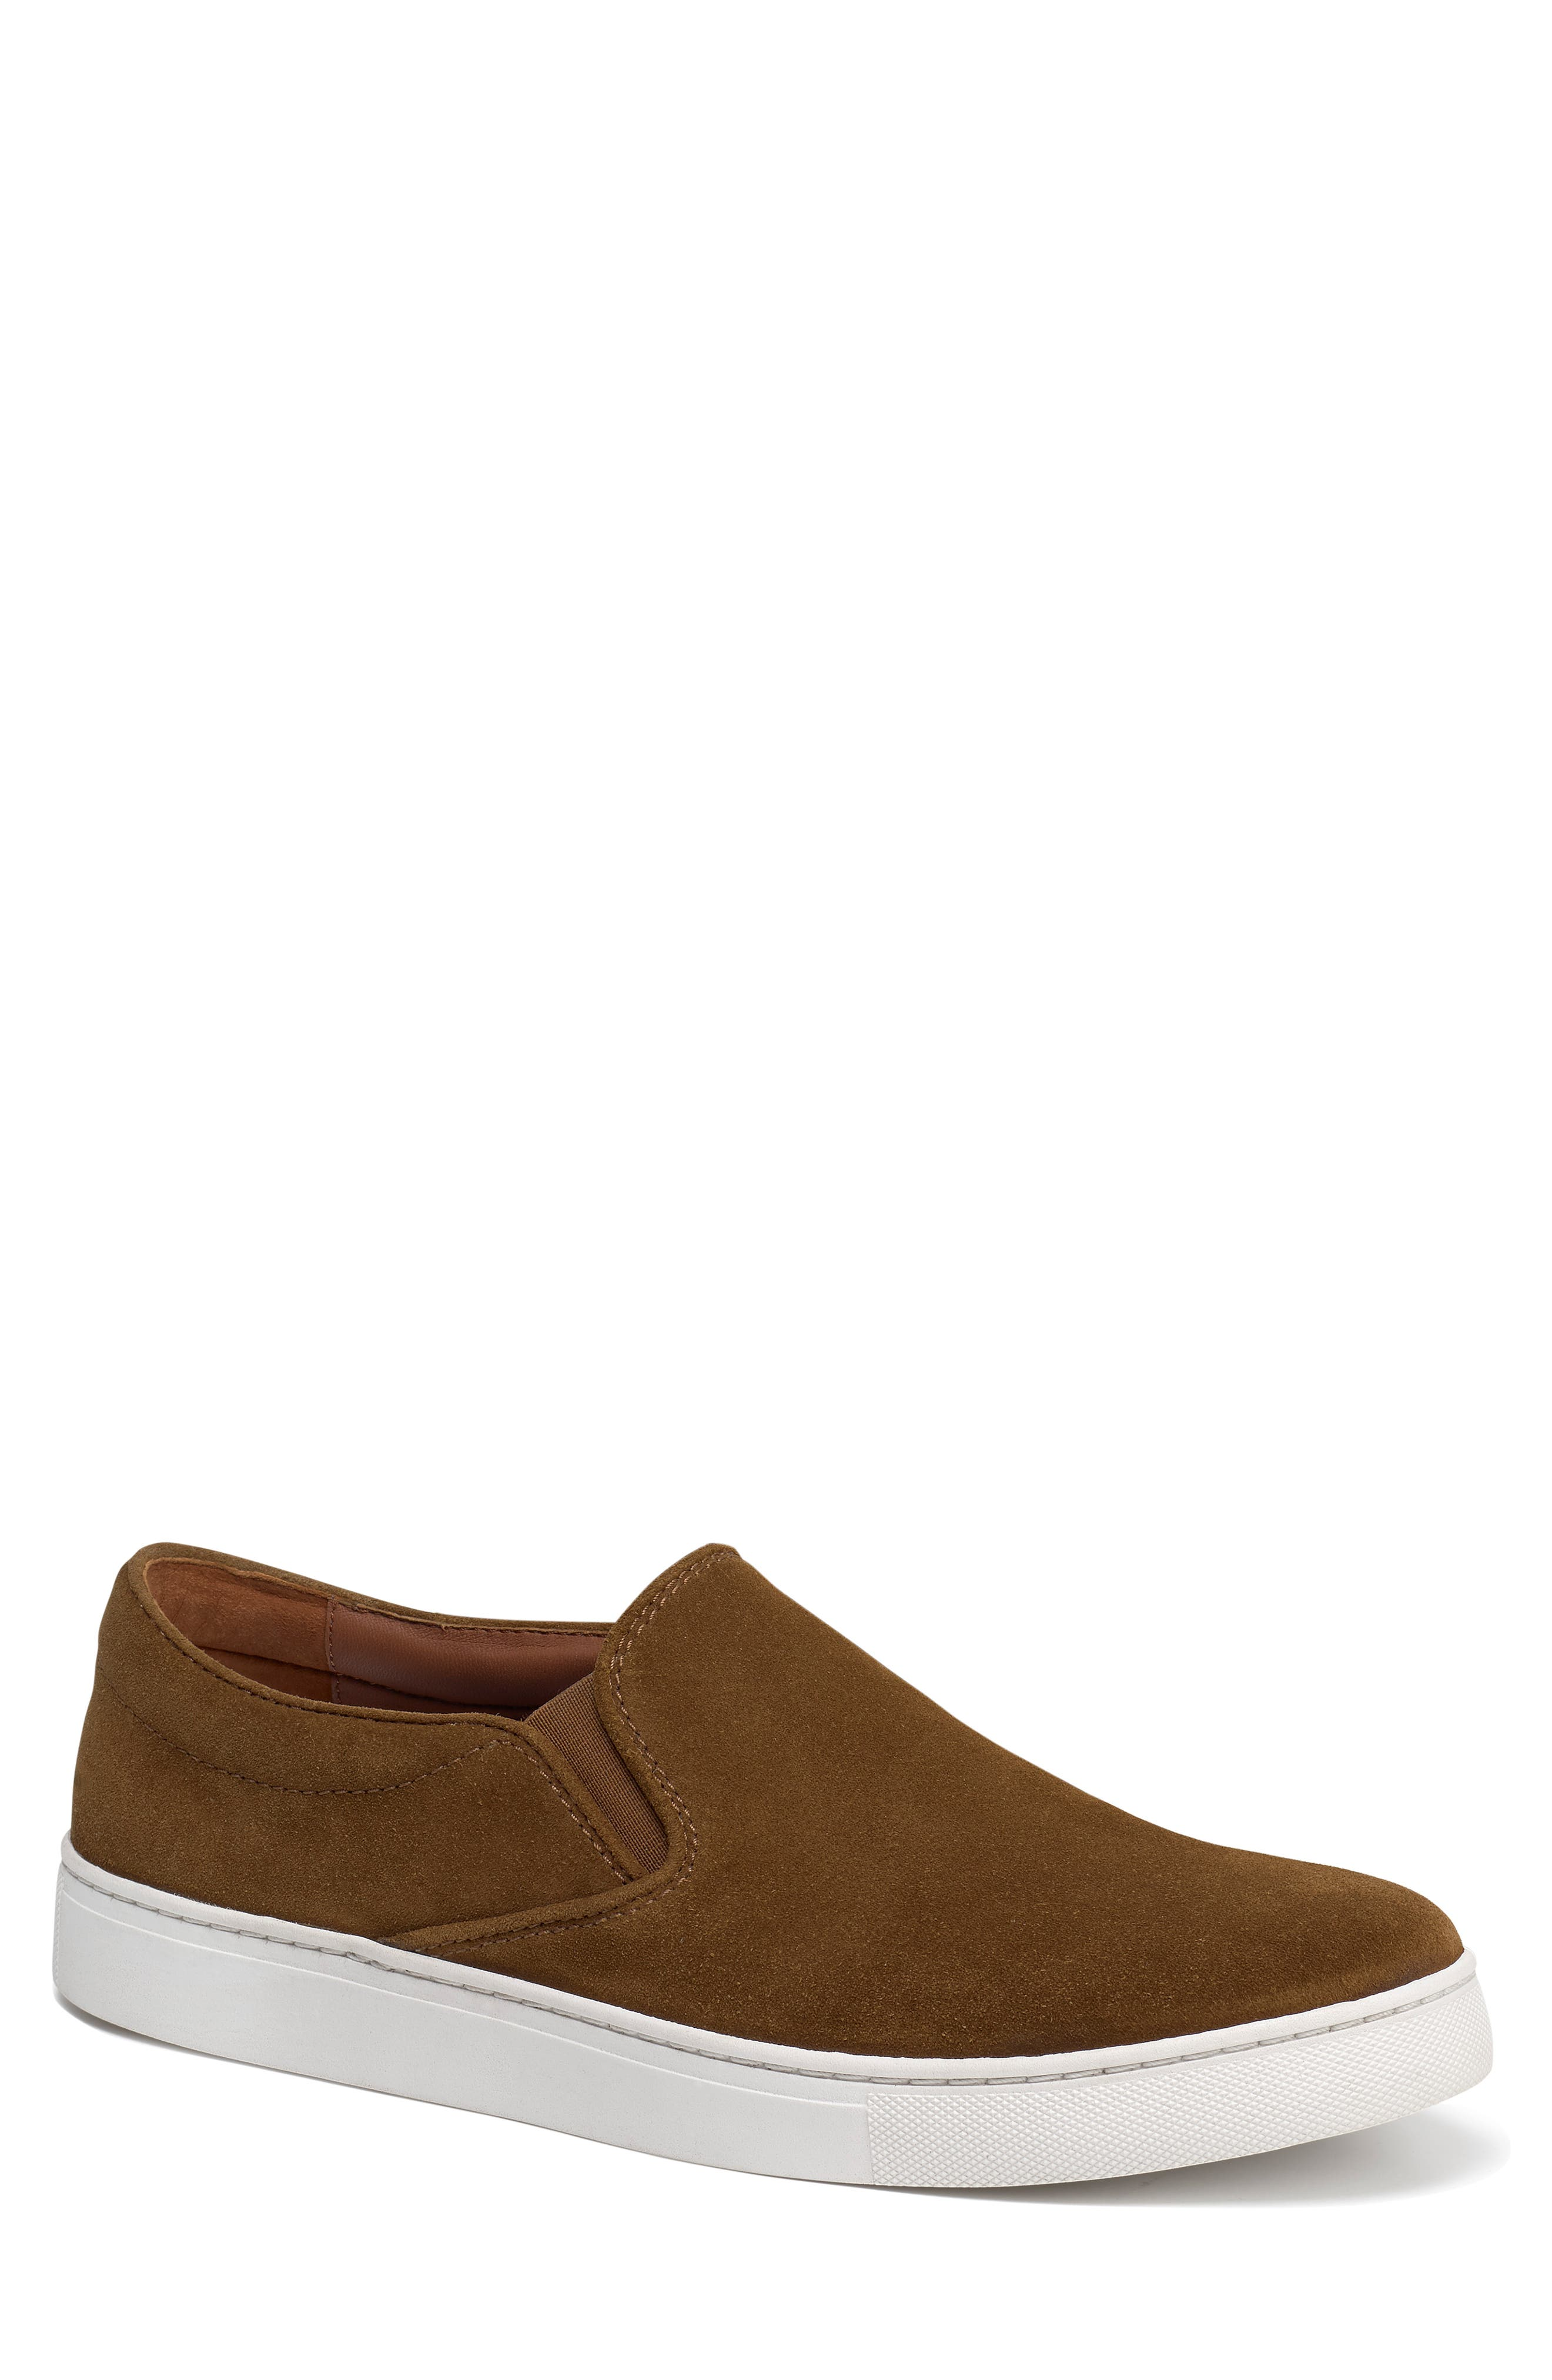 TRASK, Alex Slip-On Sneaker, Main thumbnail 1, color, SNUFF SUEDE